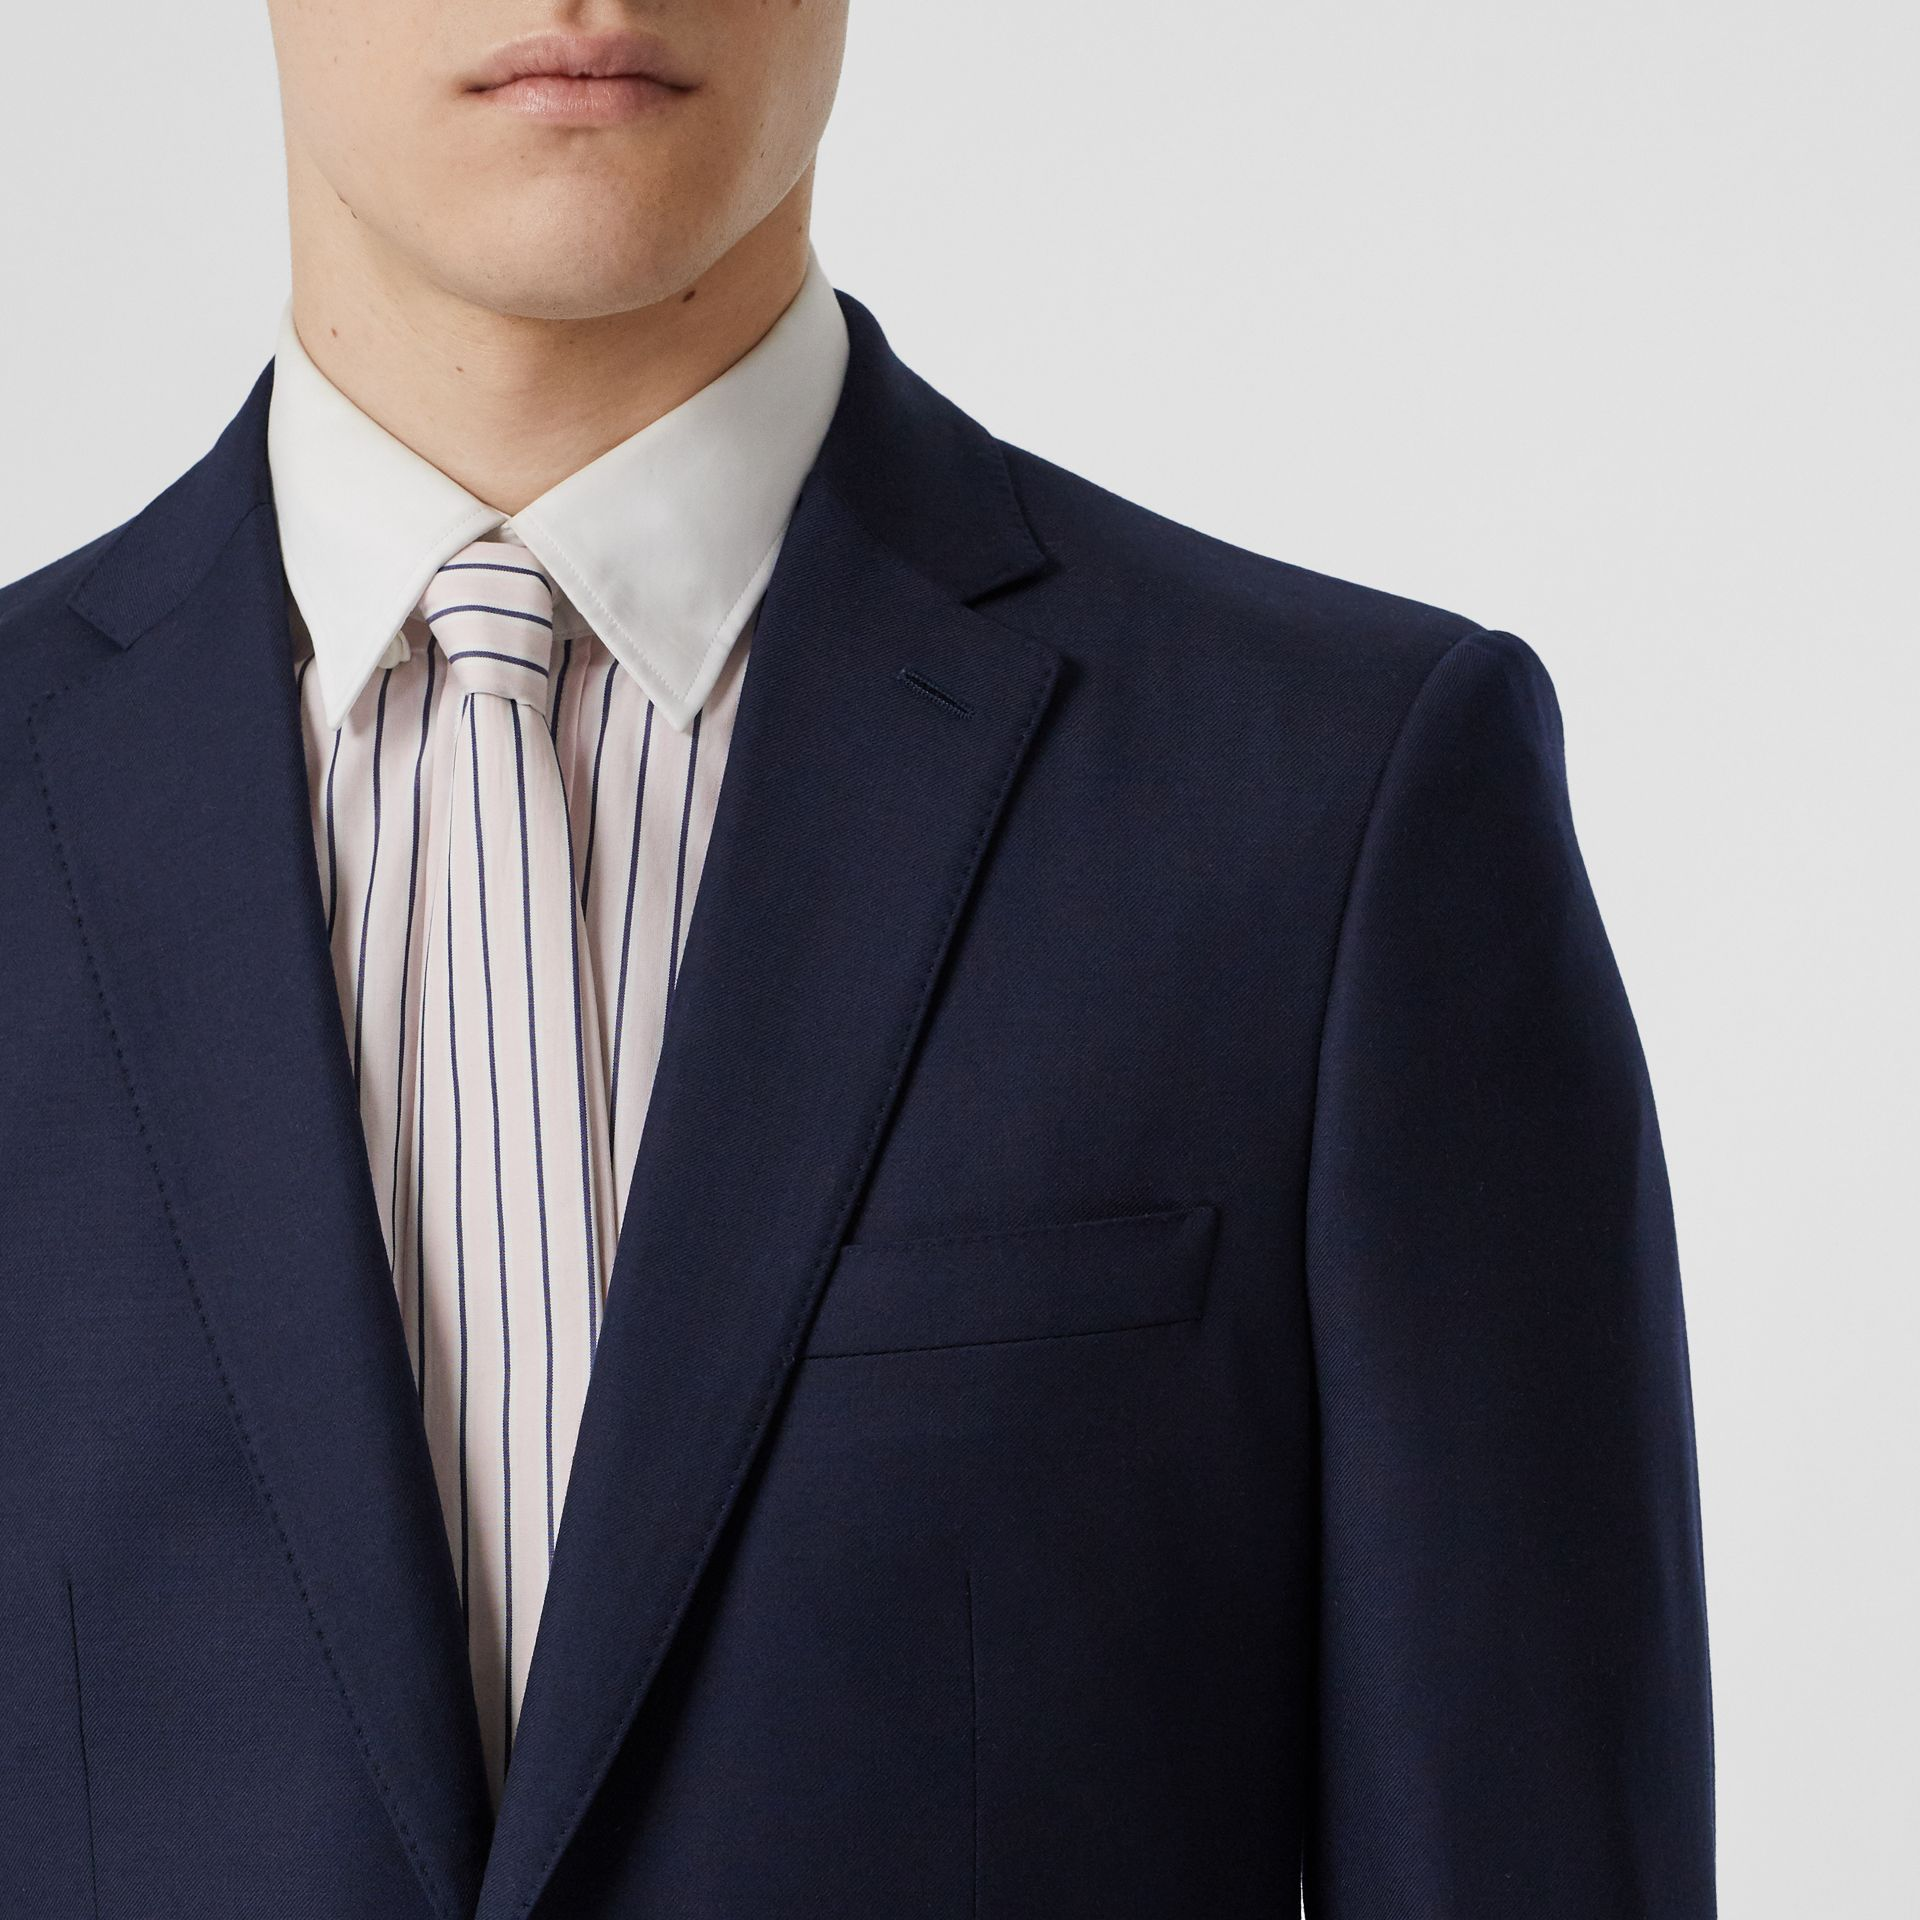 Classic Fit Wool Suit in Navy - Men | Burberry United Kingdom - gallery image 1